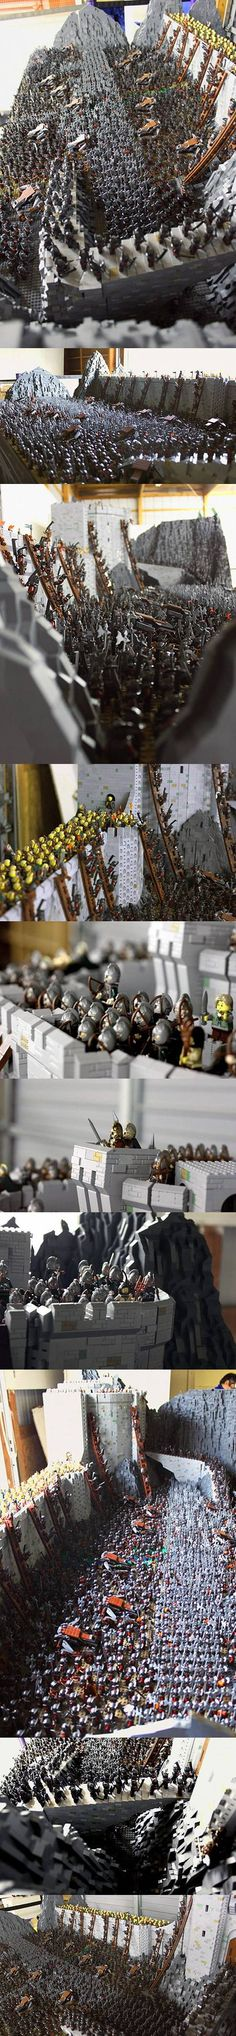 Lord of the Rings Battle of Helm\'s Deep Recreated with 150,000 LEGO Bricks